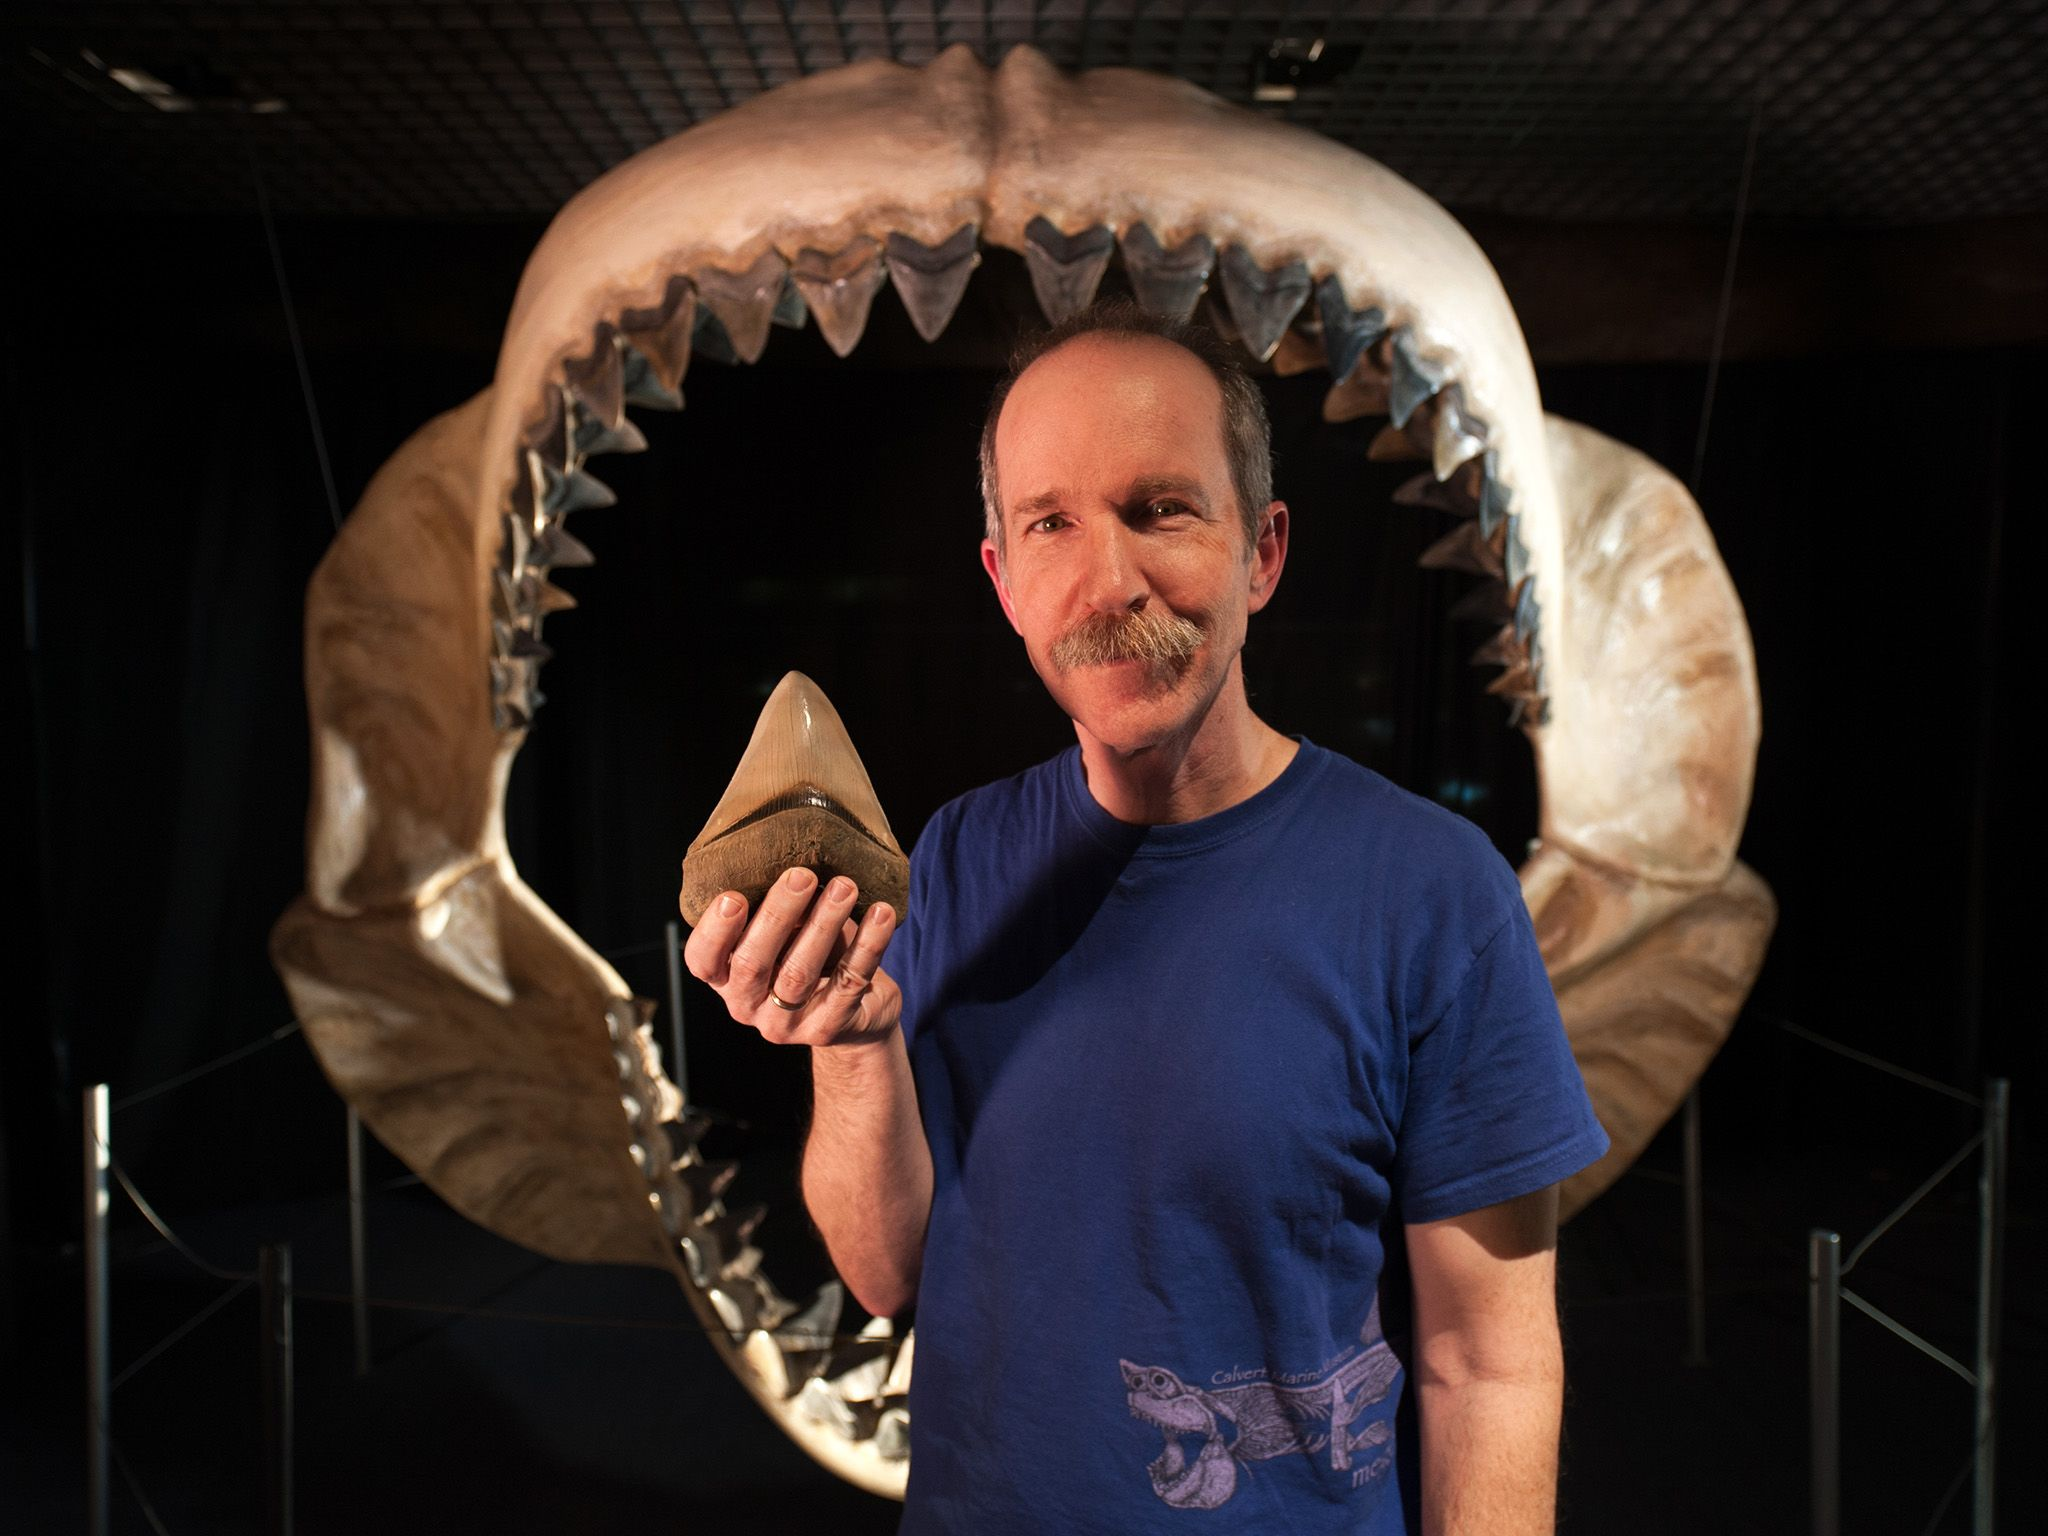 Baltimore, MD: Stephen J. Godfrey Ph.D. Curator of Paleontology, Calvert Marine Museum. Stephen... [Photo of the day - June 2015]